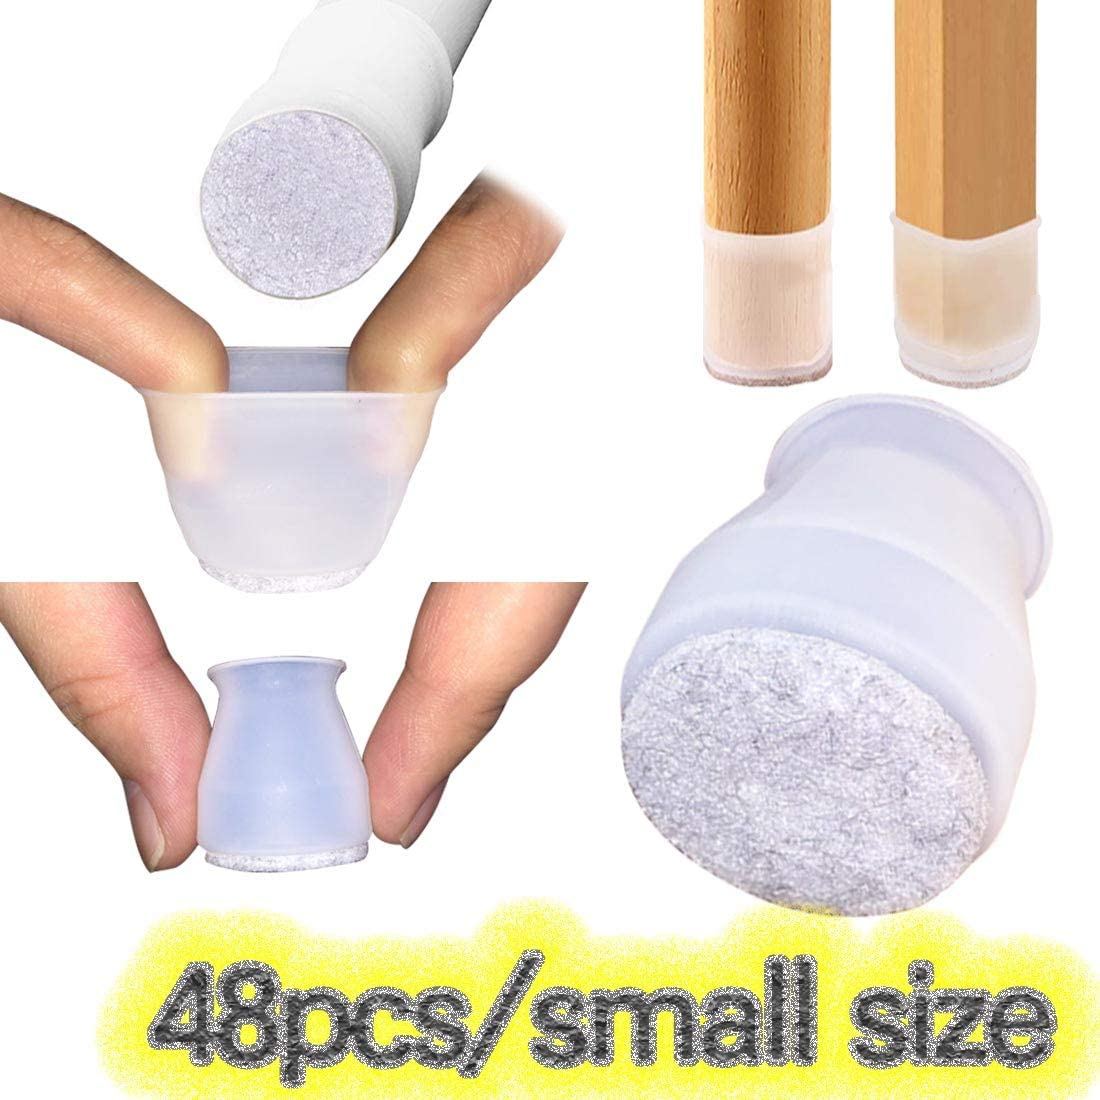 48Pcs[Small Size]Soft Silicone for Round and Square Chair Legs Floor Protectors Caps,Protection Cover with Felt Pads.for Dining Chair/Table Feet.Furniture Cups(48PCS(FIT 20-33mm / 0.78-1.3 inch))